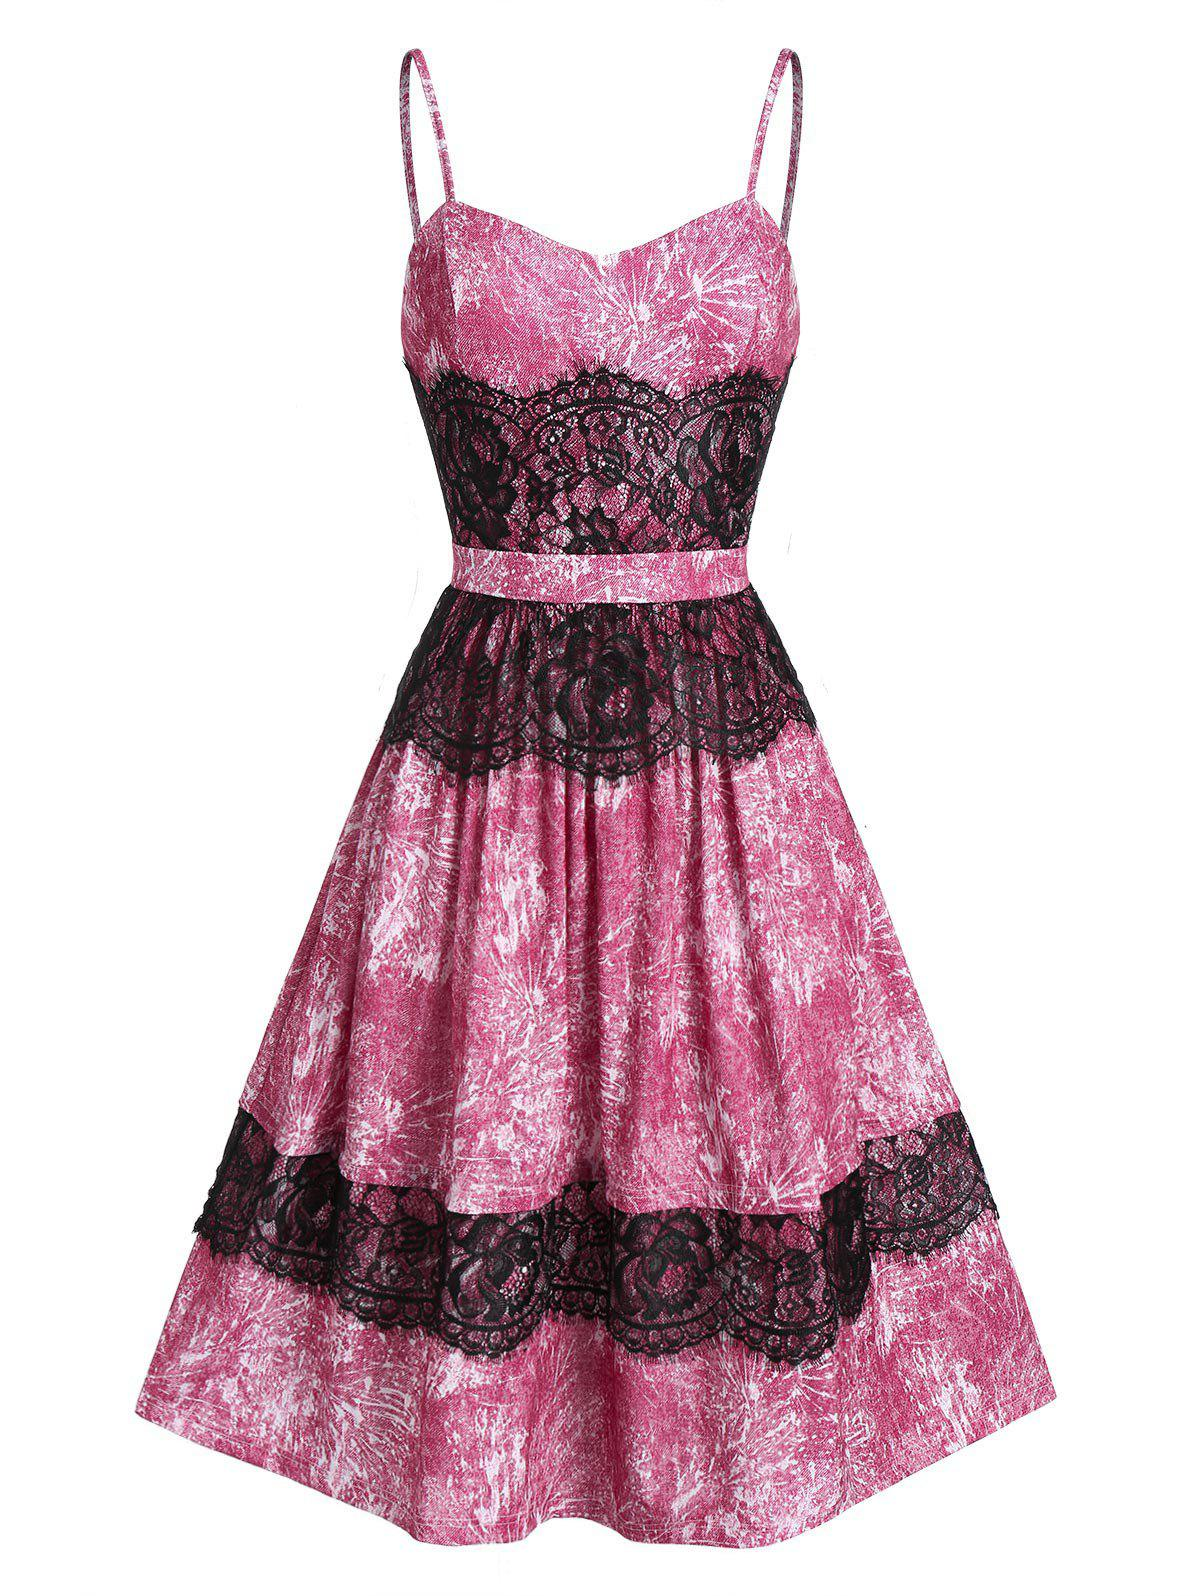 Sweetheart Neck Lace Fit And Flare Lace Strap Dress - multicolor A 2XL